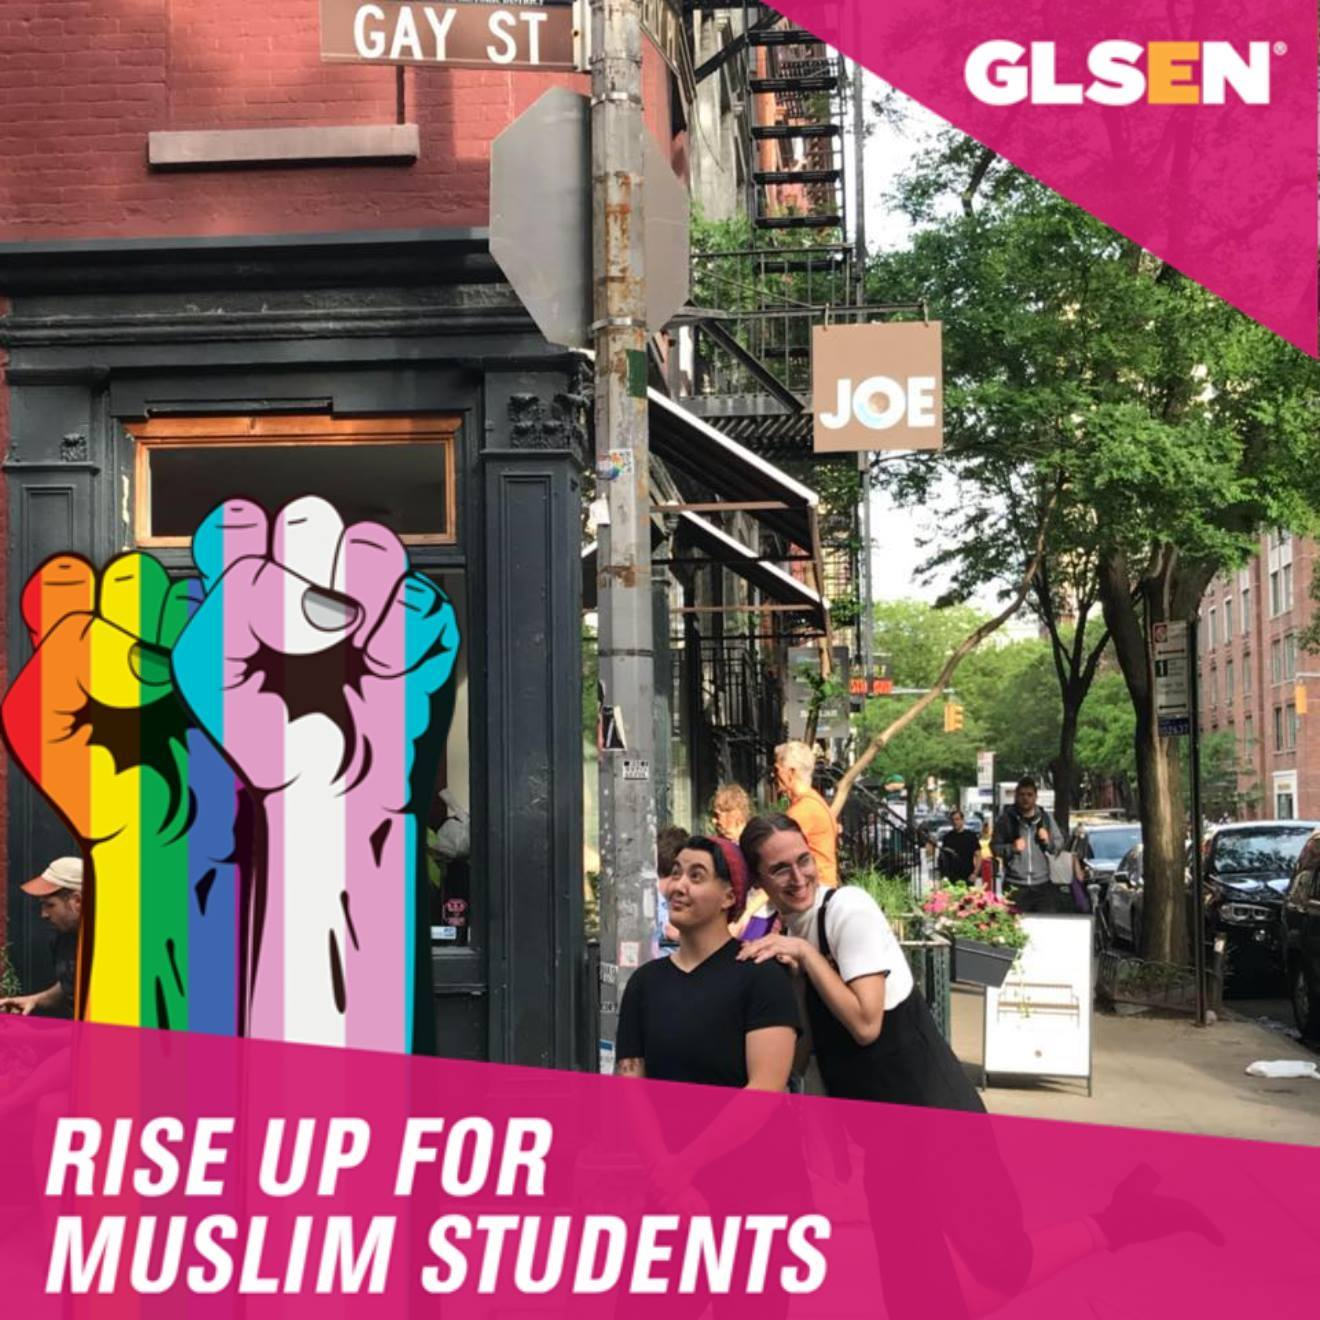 Rise Up to Protect Muslim Students Facebook Frame